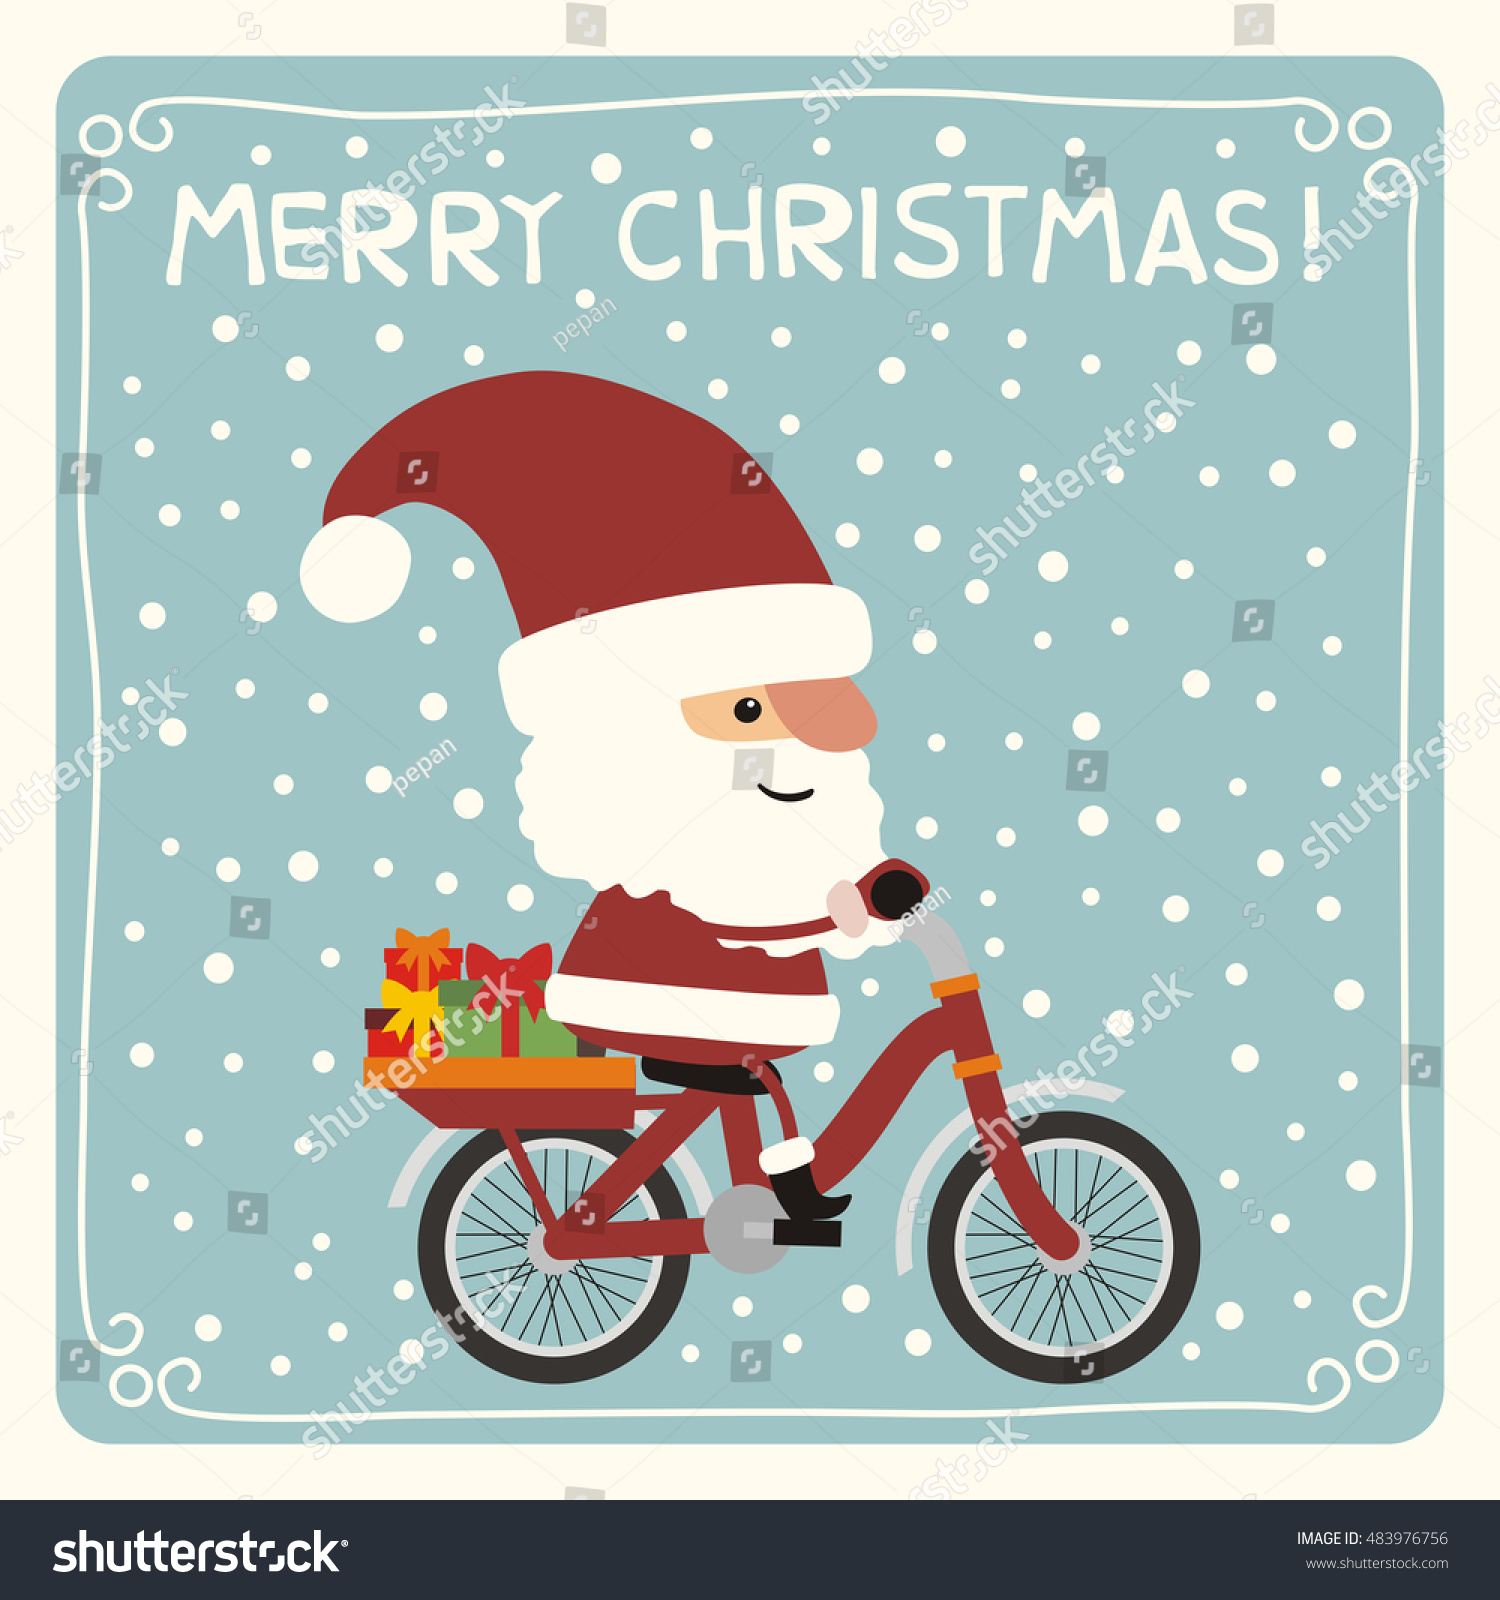 Merry Christmas Funny Santa Claus Gifts Stock Vector (Royalty Free ...